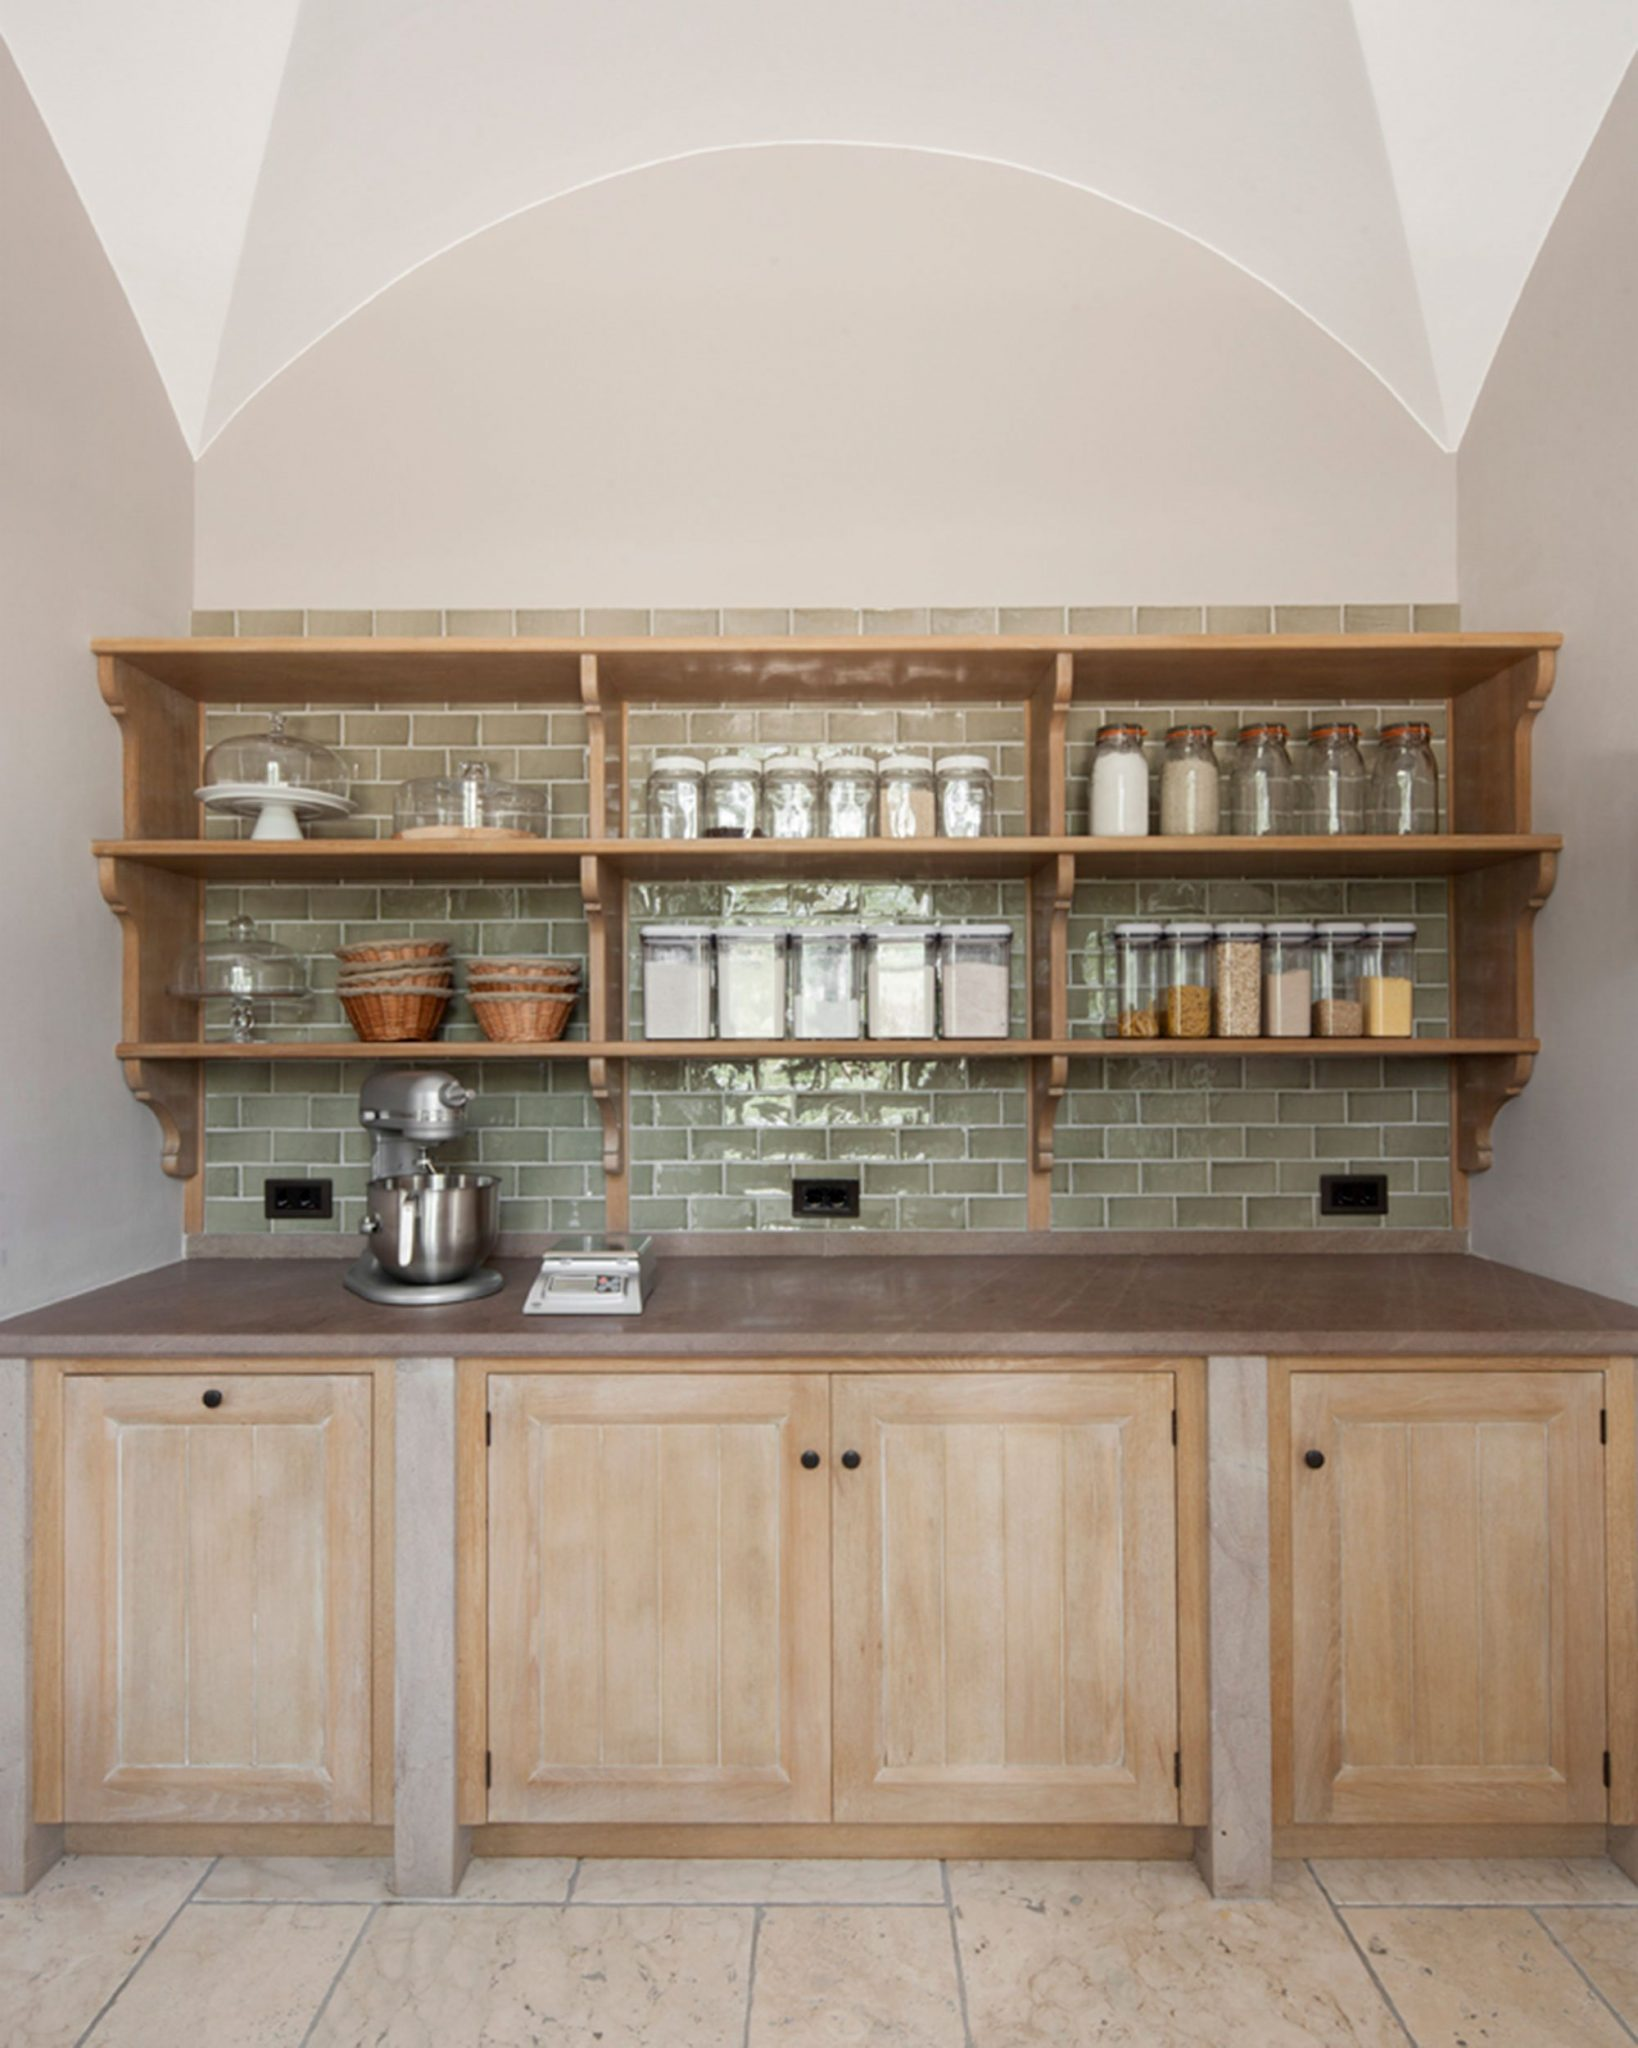 Bespoke pantry Artichoke interior joinery country house